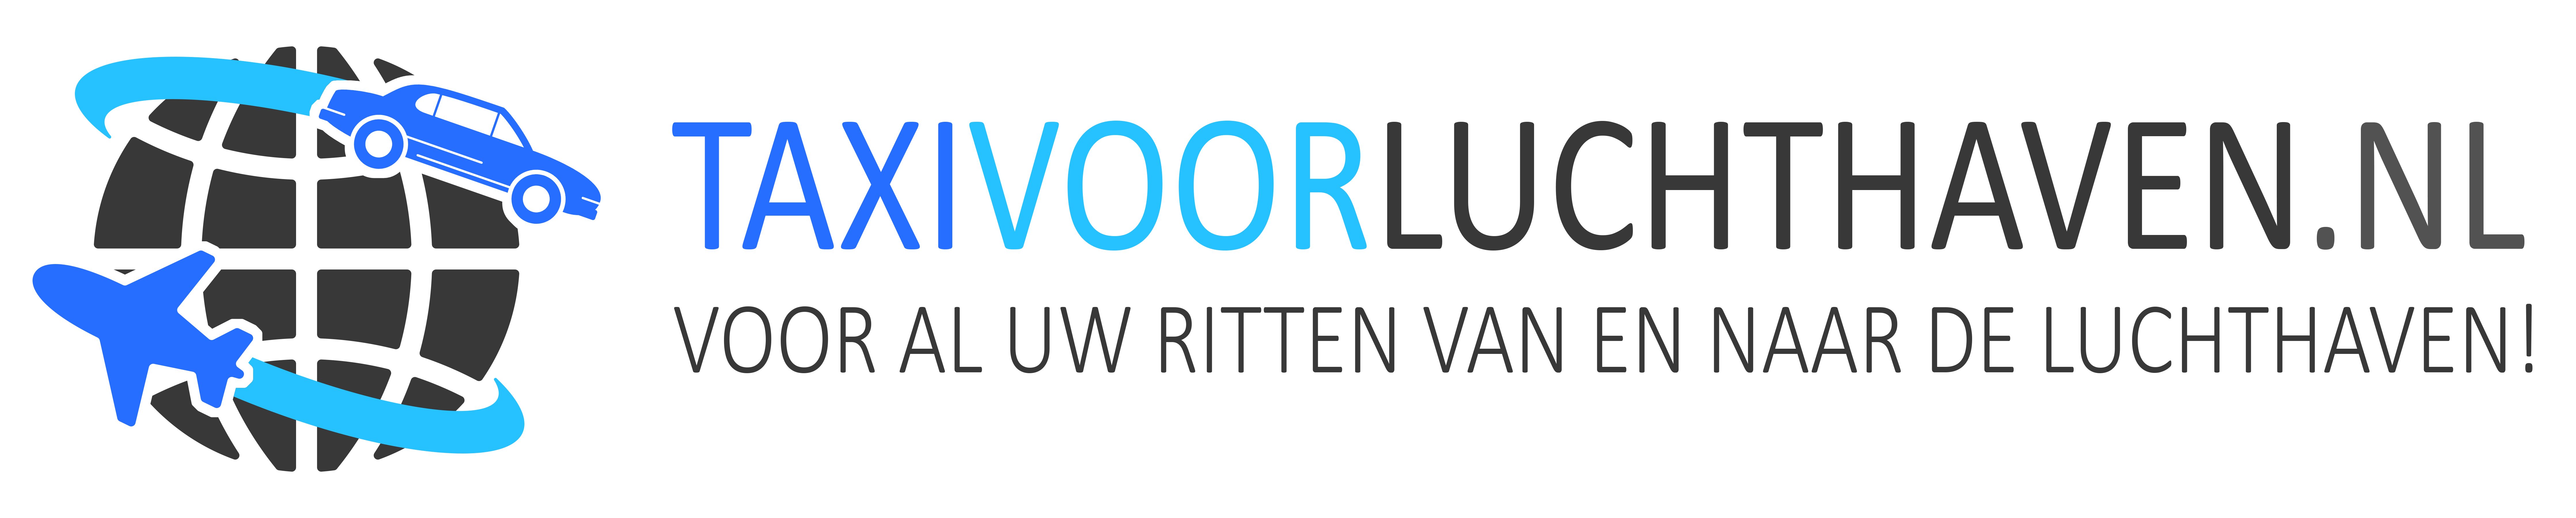 Taxi Voor Luchthaven